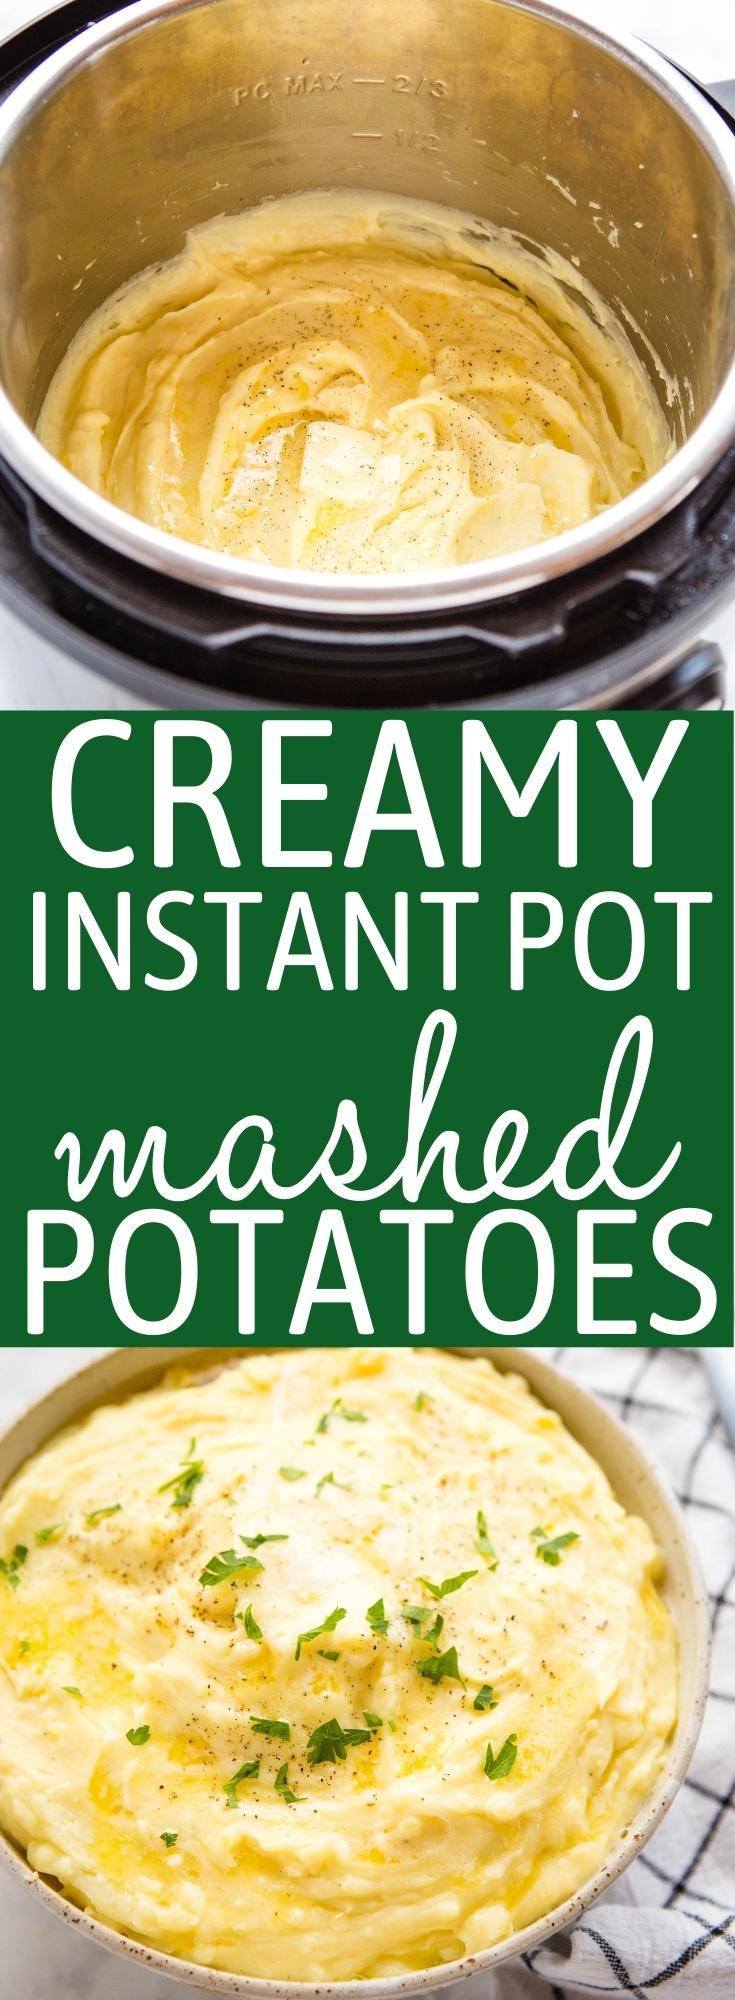 These Creamy Instant Pot Mashed Potatoes are the perfect easy side dish that's perfect for a holiday dinner or a quick weeknight meal! Ultra creamy and decadent, and on the table in 25 minutes! Recipe from thebusybaker.ca! #creamy #mashedpotatoes #instantpot #easysidedish #sidedish #holidaymeal #weeknightmeal #familydinner #easyrecipe via @busybakerblog